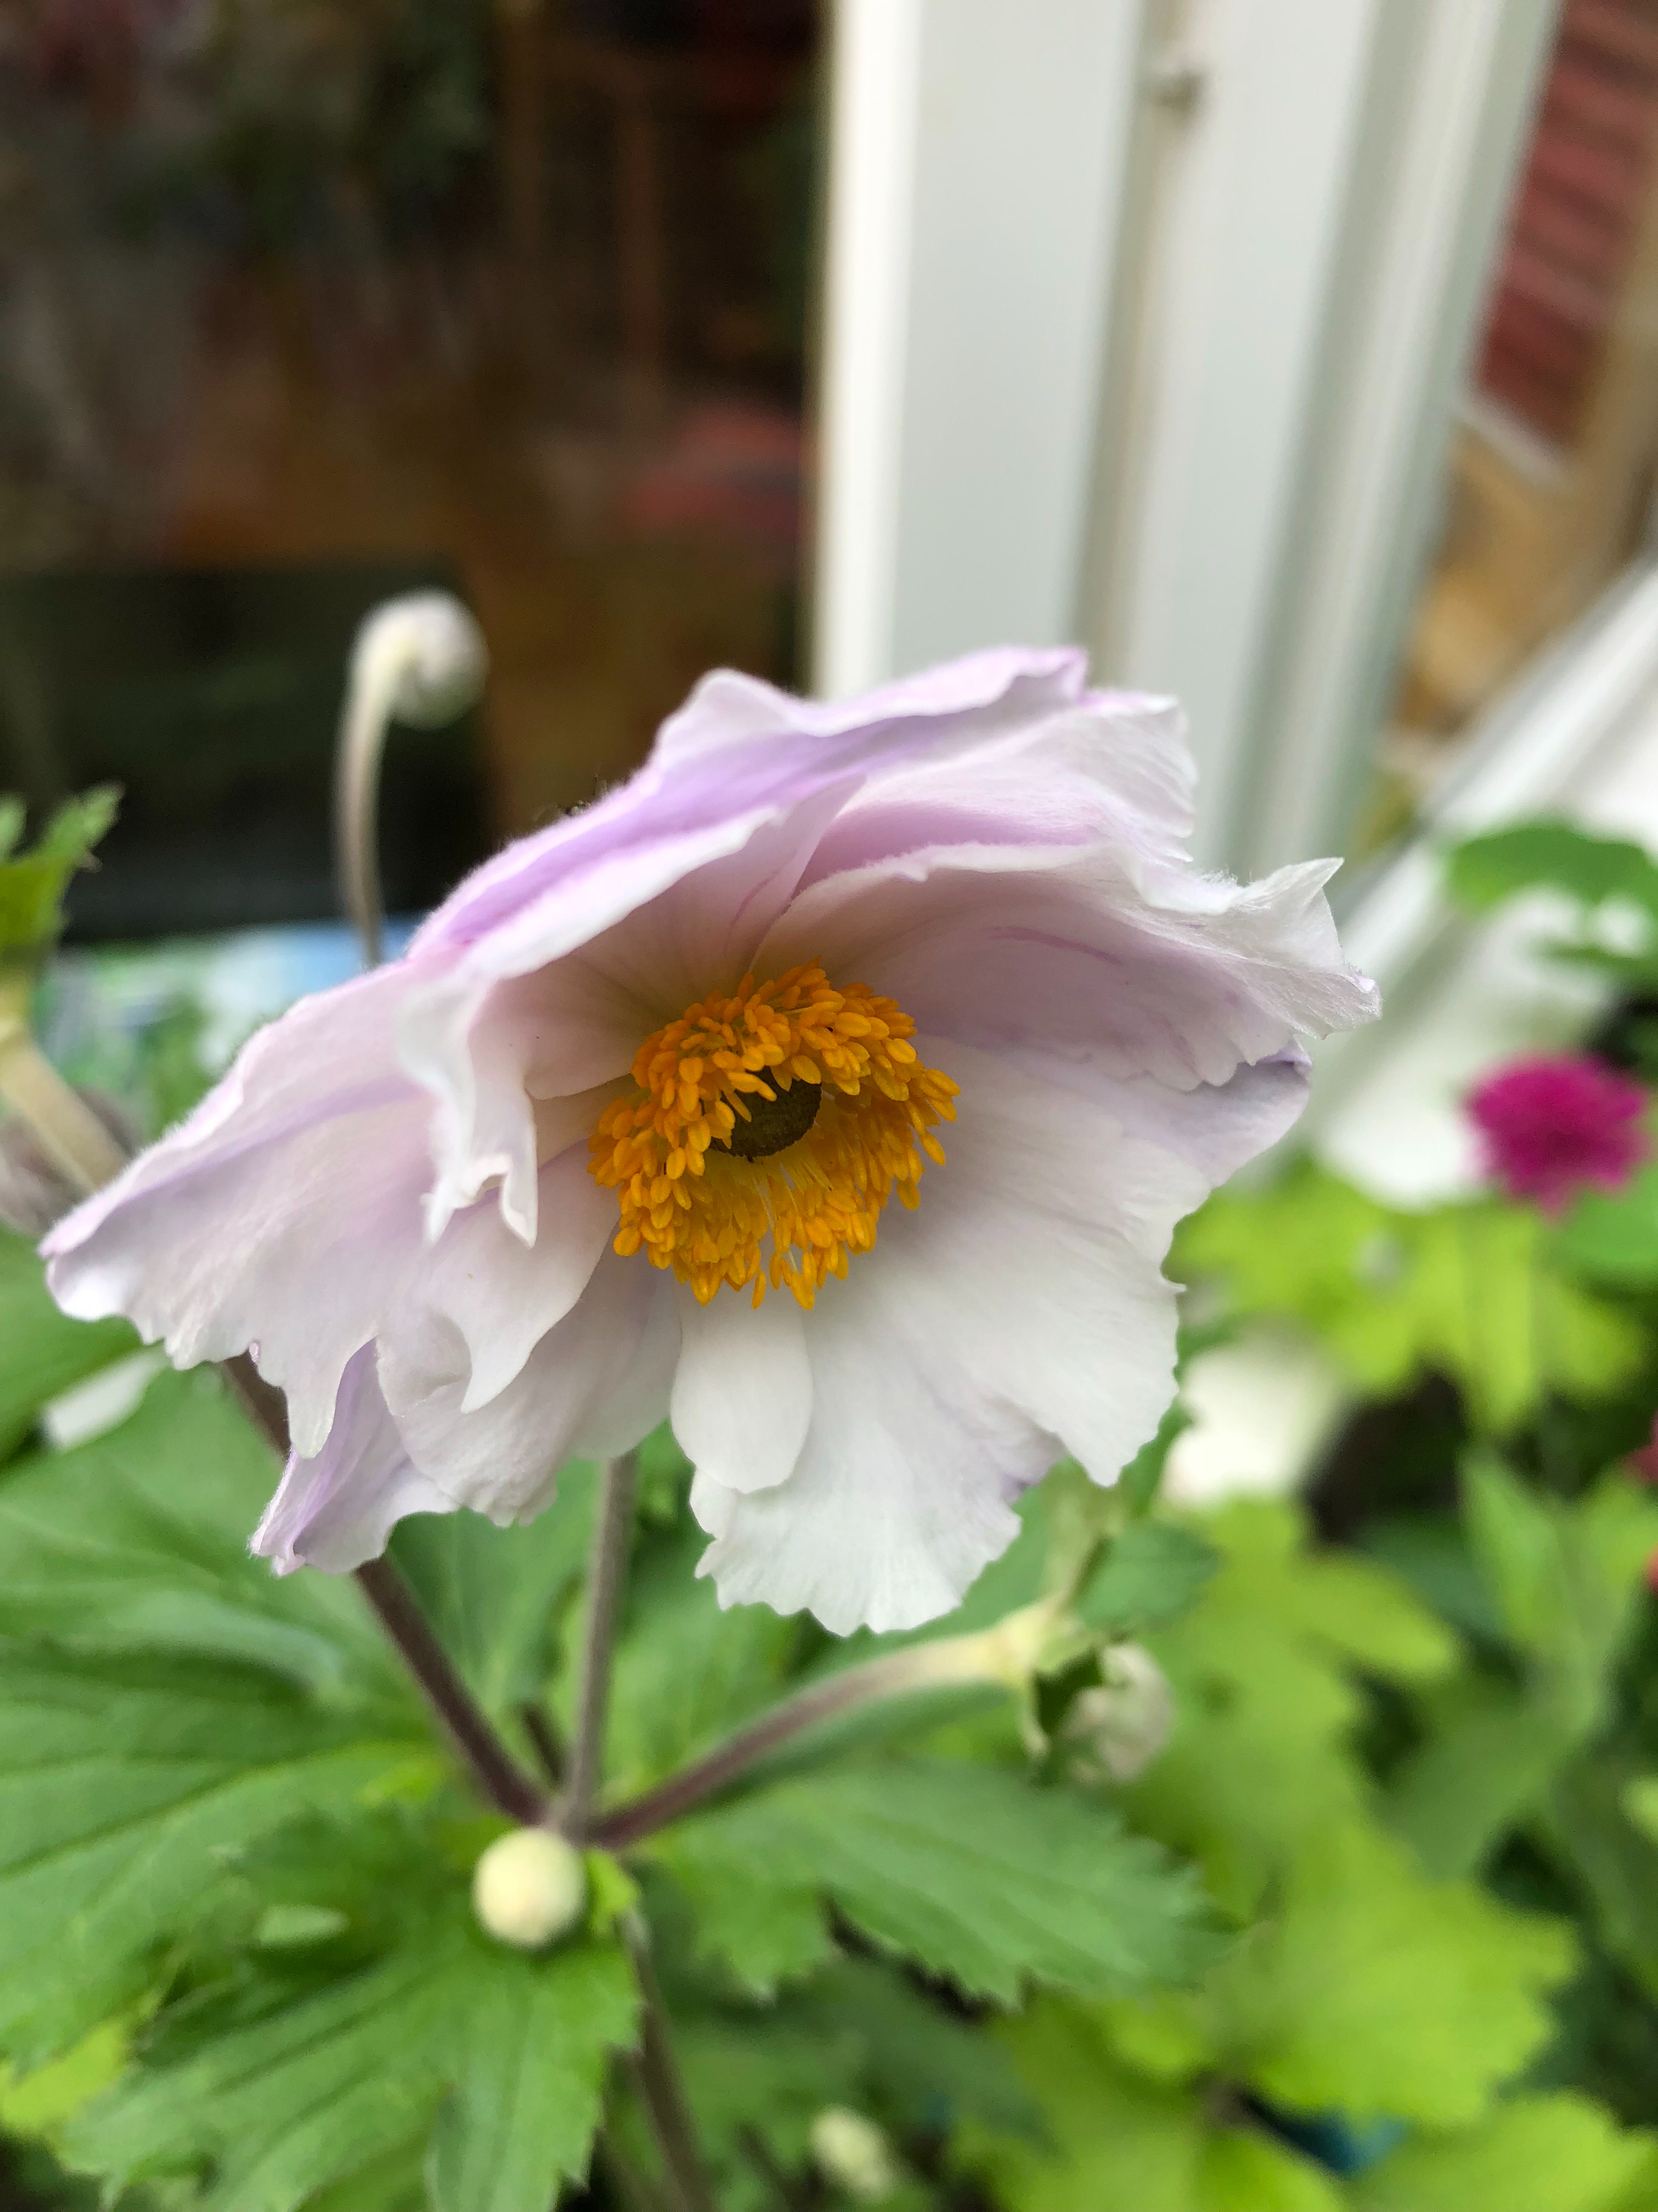 autumn flowering Japanese anemones